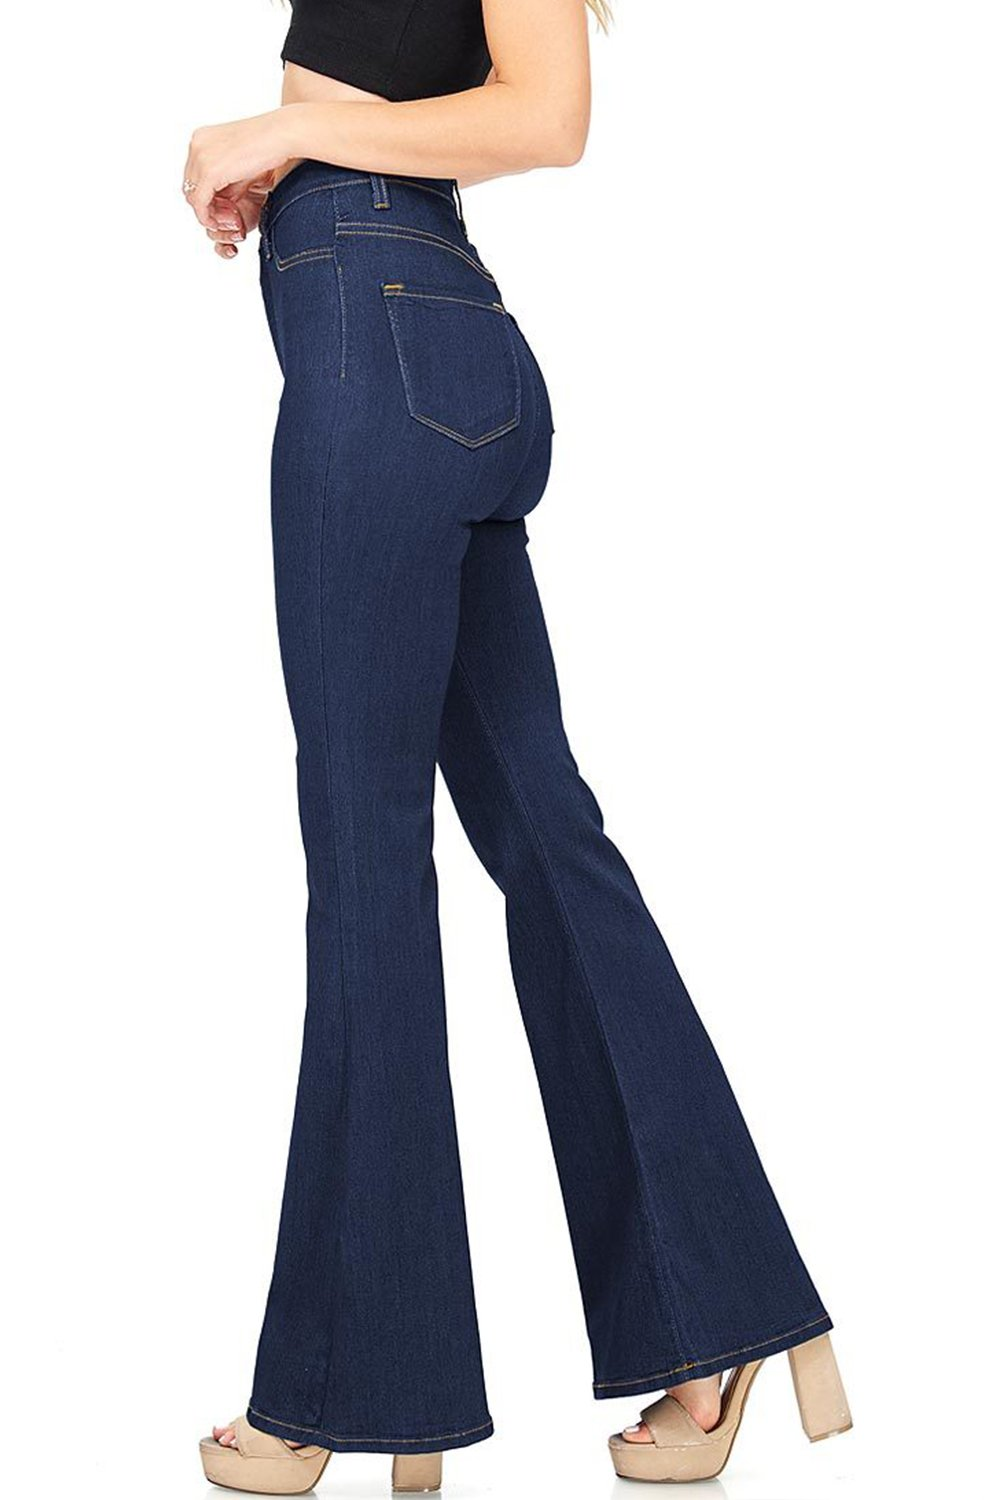 Lueyif Womens Flare High Waisted Bell Bottom Jeans Lounge Plain Fitted Denim Pants,X-Large,Navy